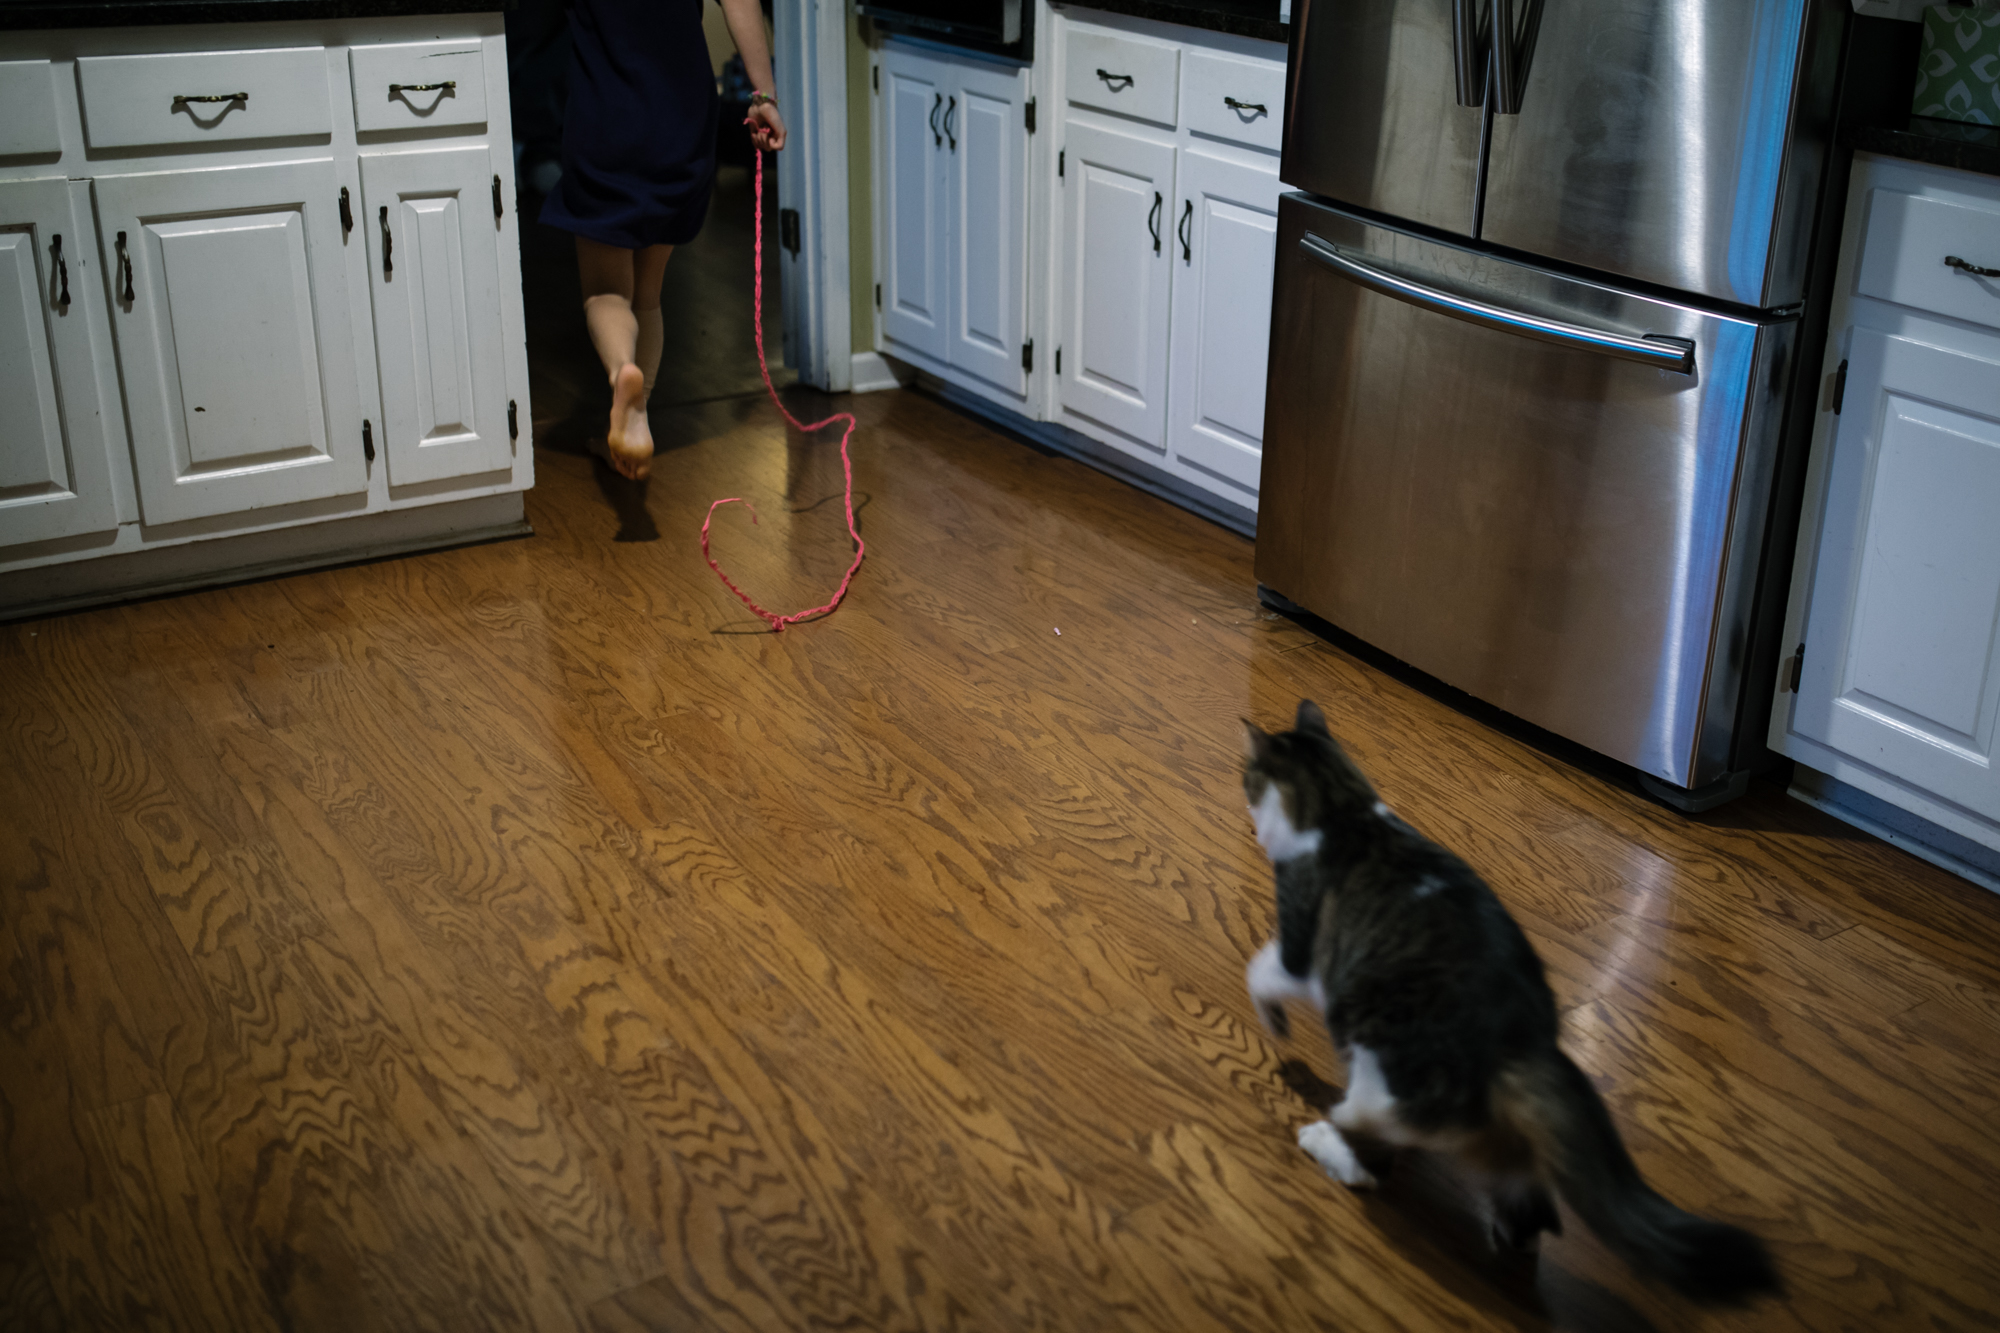 A cat chases a red string through a kitchen